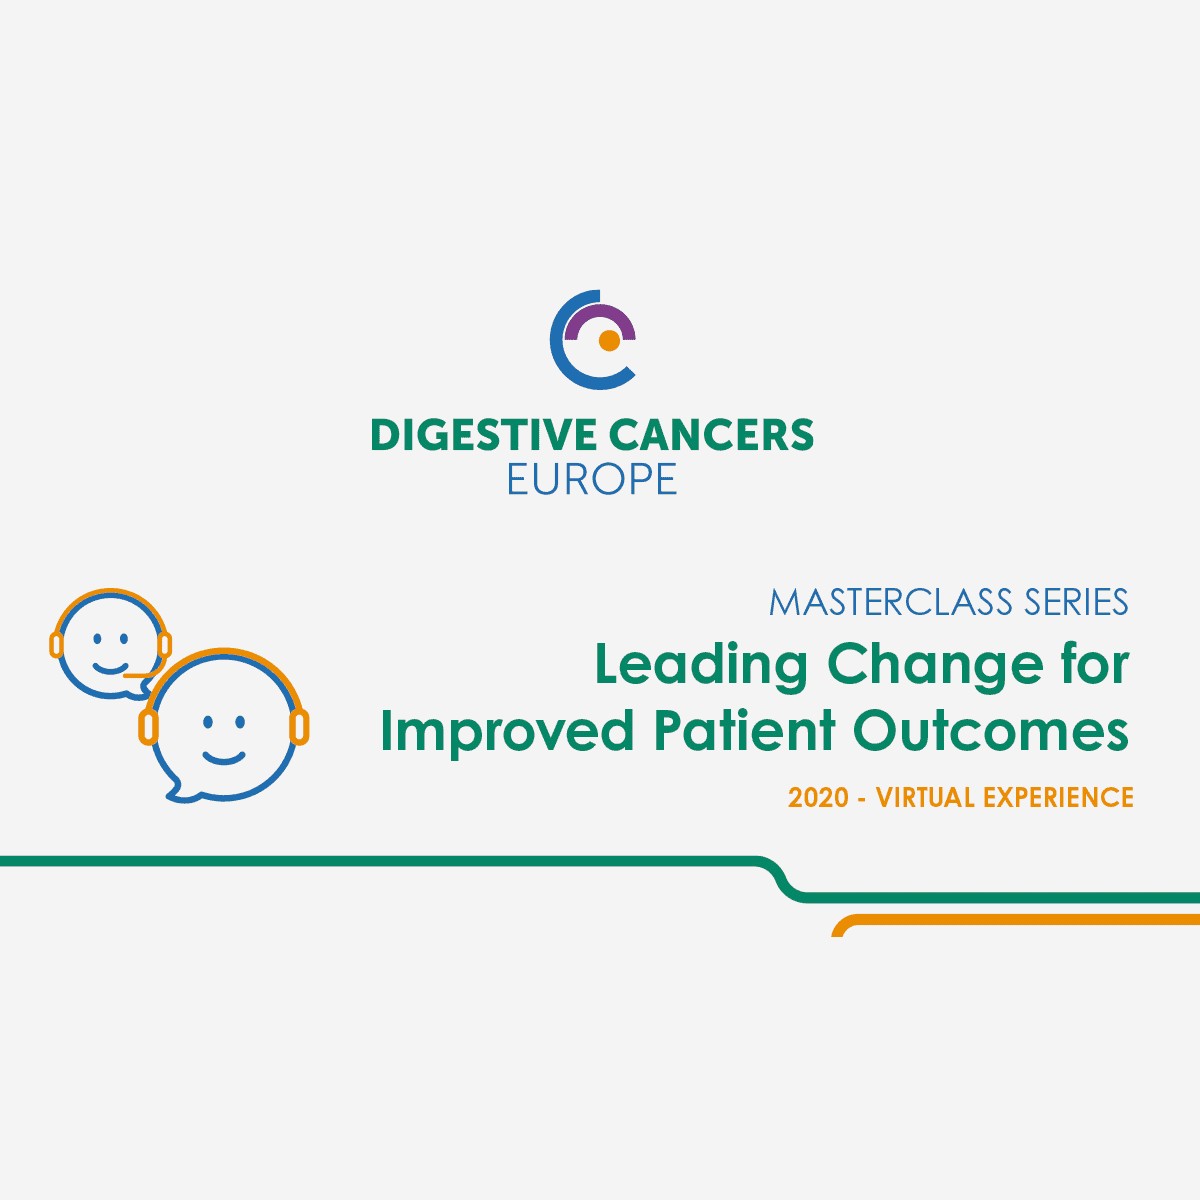 Leading Change for Improved Patient Outcomes